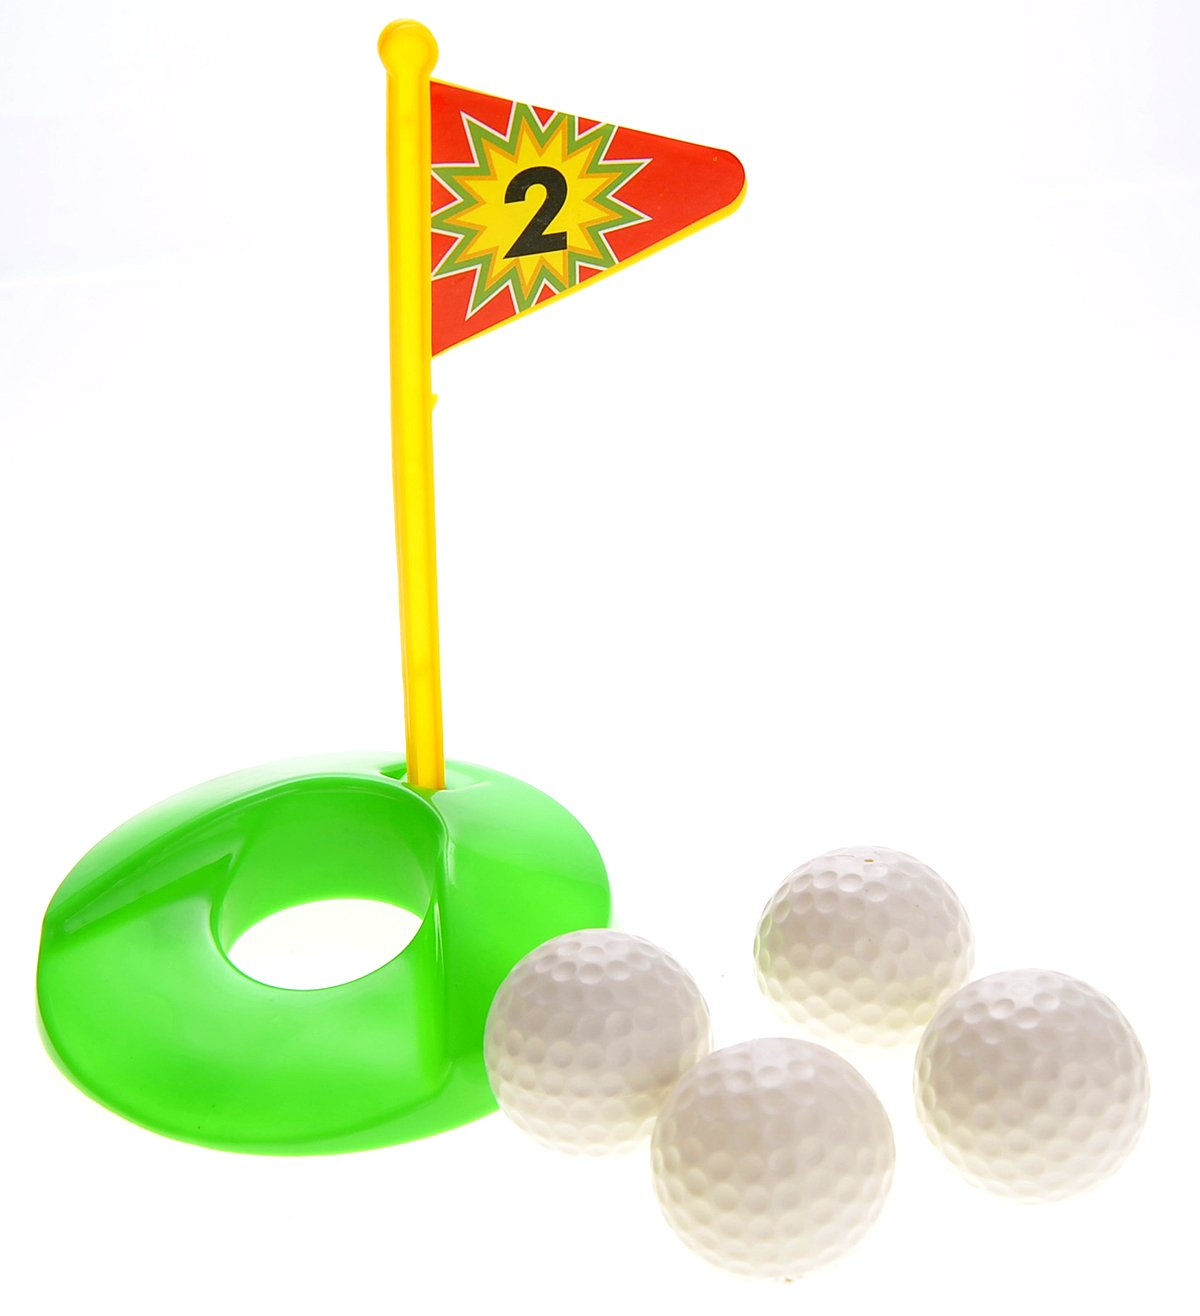 PowerTRC Deluxe Golf Play-Set for Kids w/ Easy Storage by PowerTRC (Image #3)